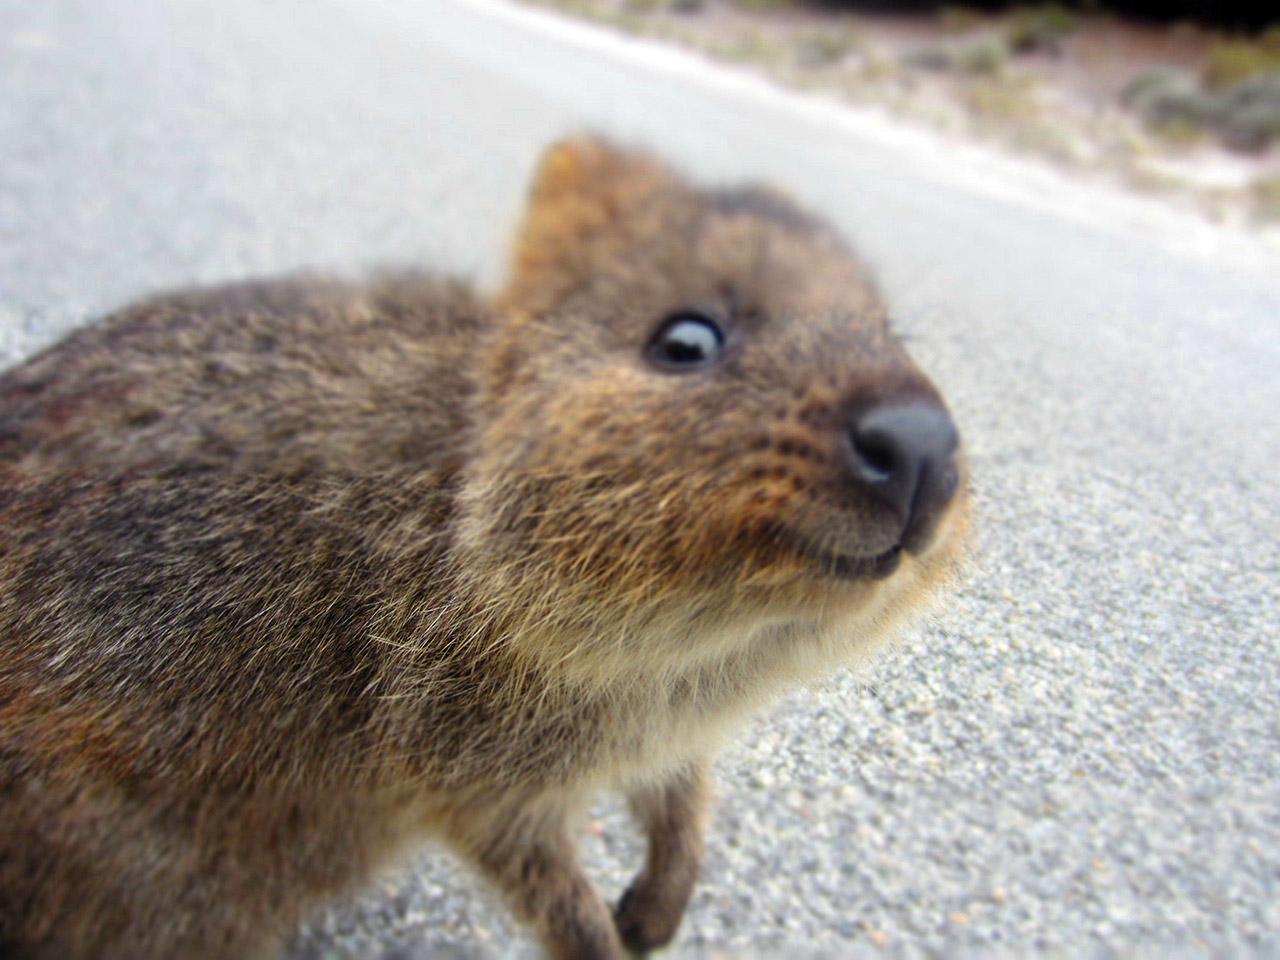 Meet the Quokka, the happiest animal on Earth